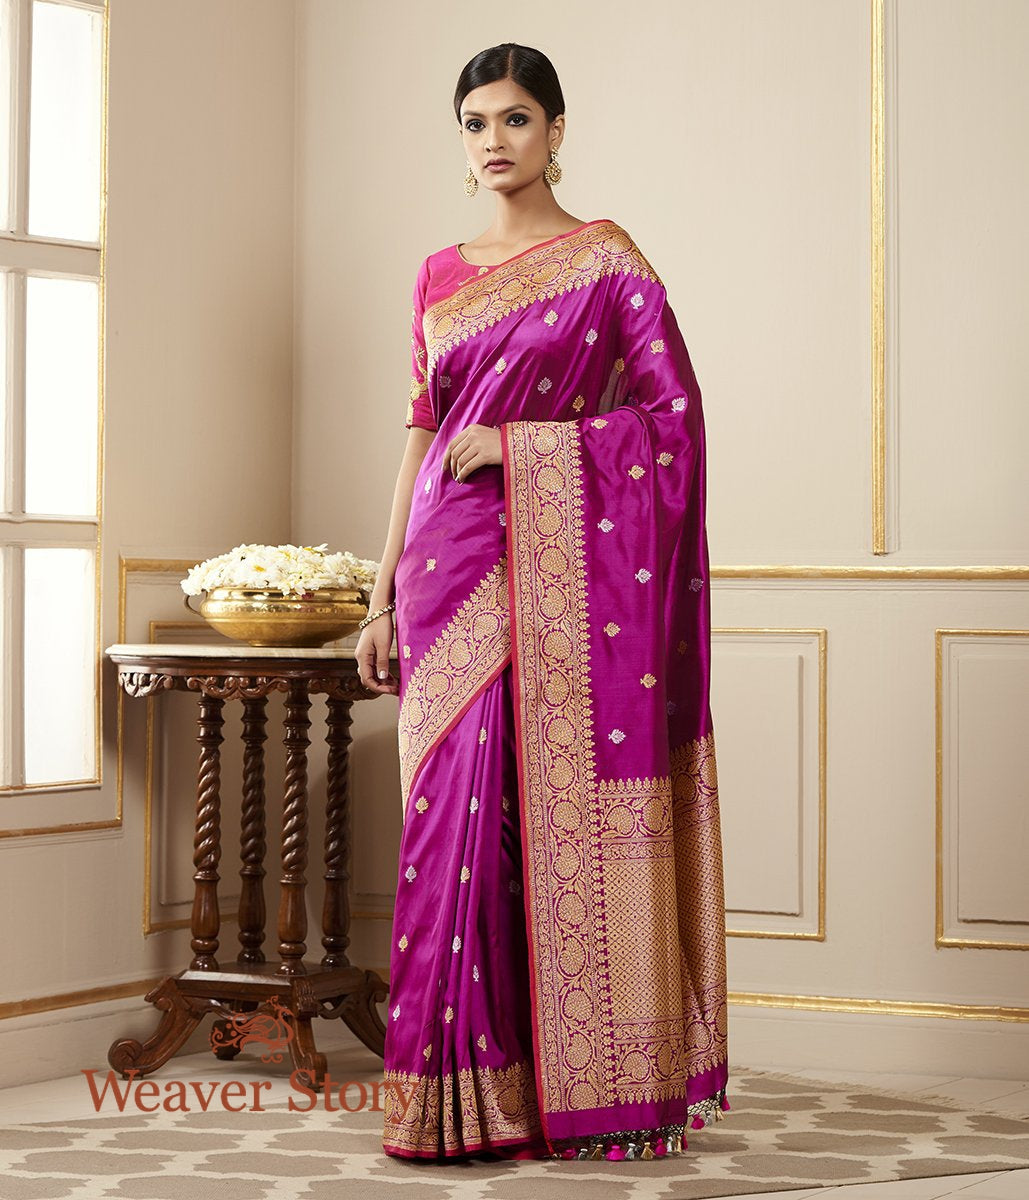 Handwoven Purple Banarasi Saree with Kadhwa Booti and Floral Border